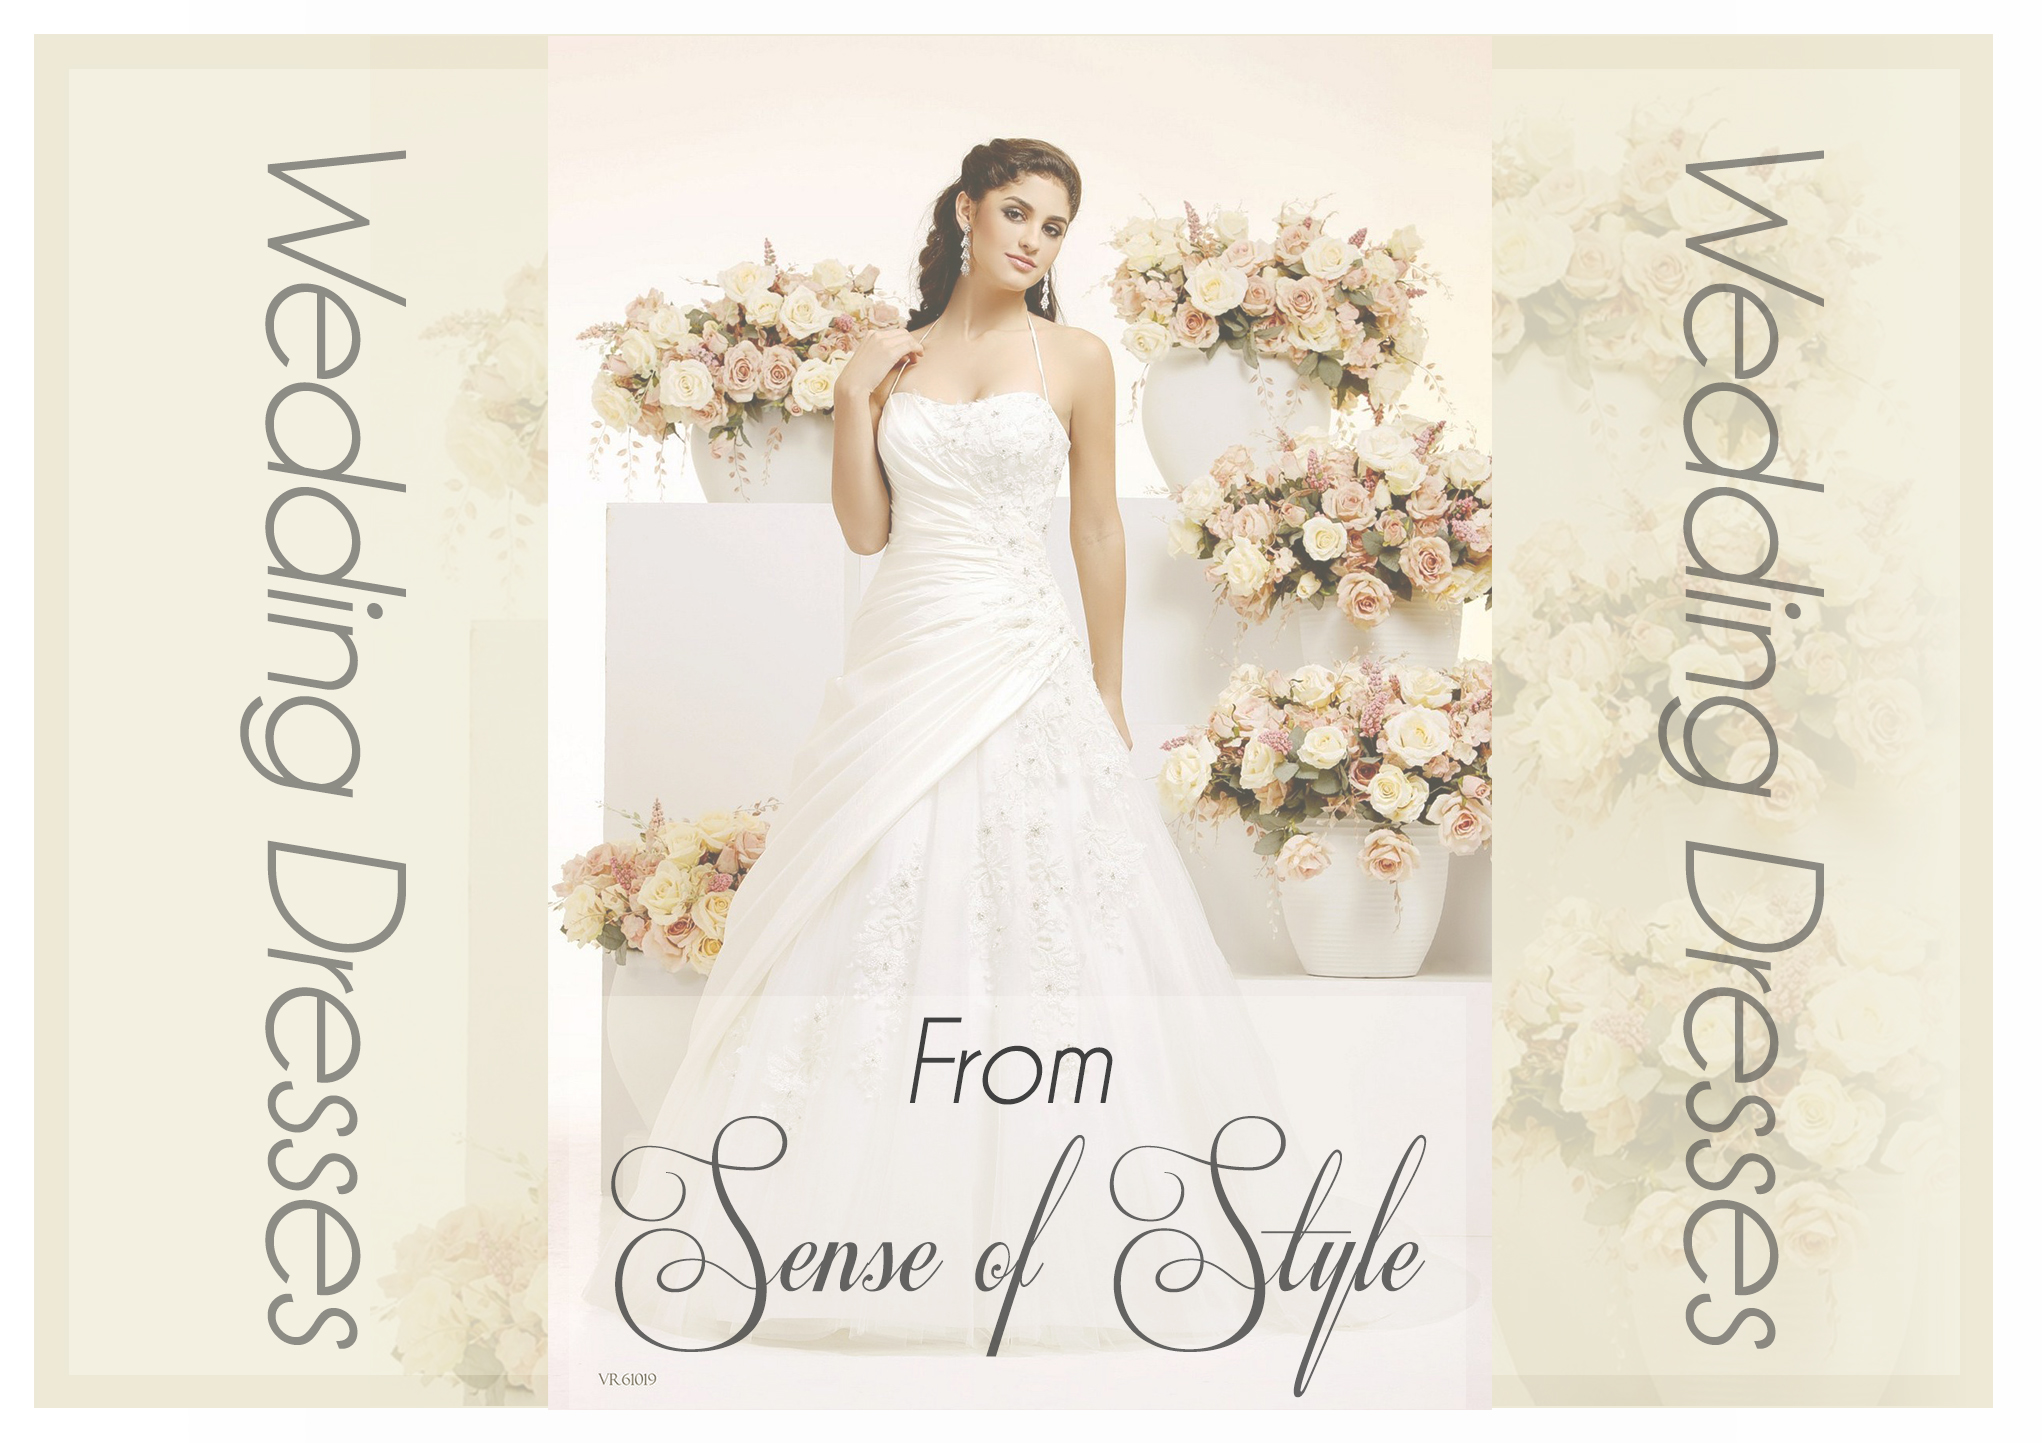 Sense of Style - Darlington Bridal Store